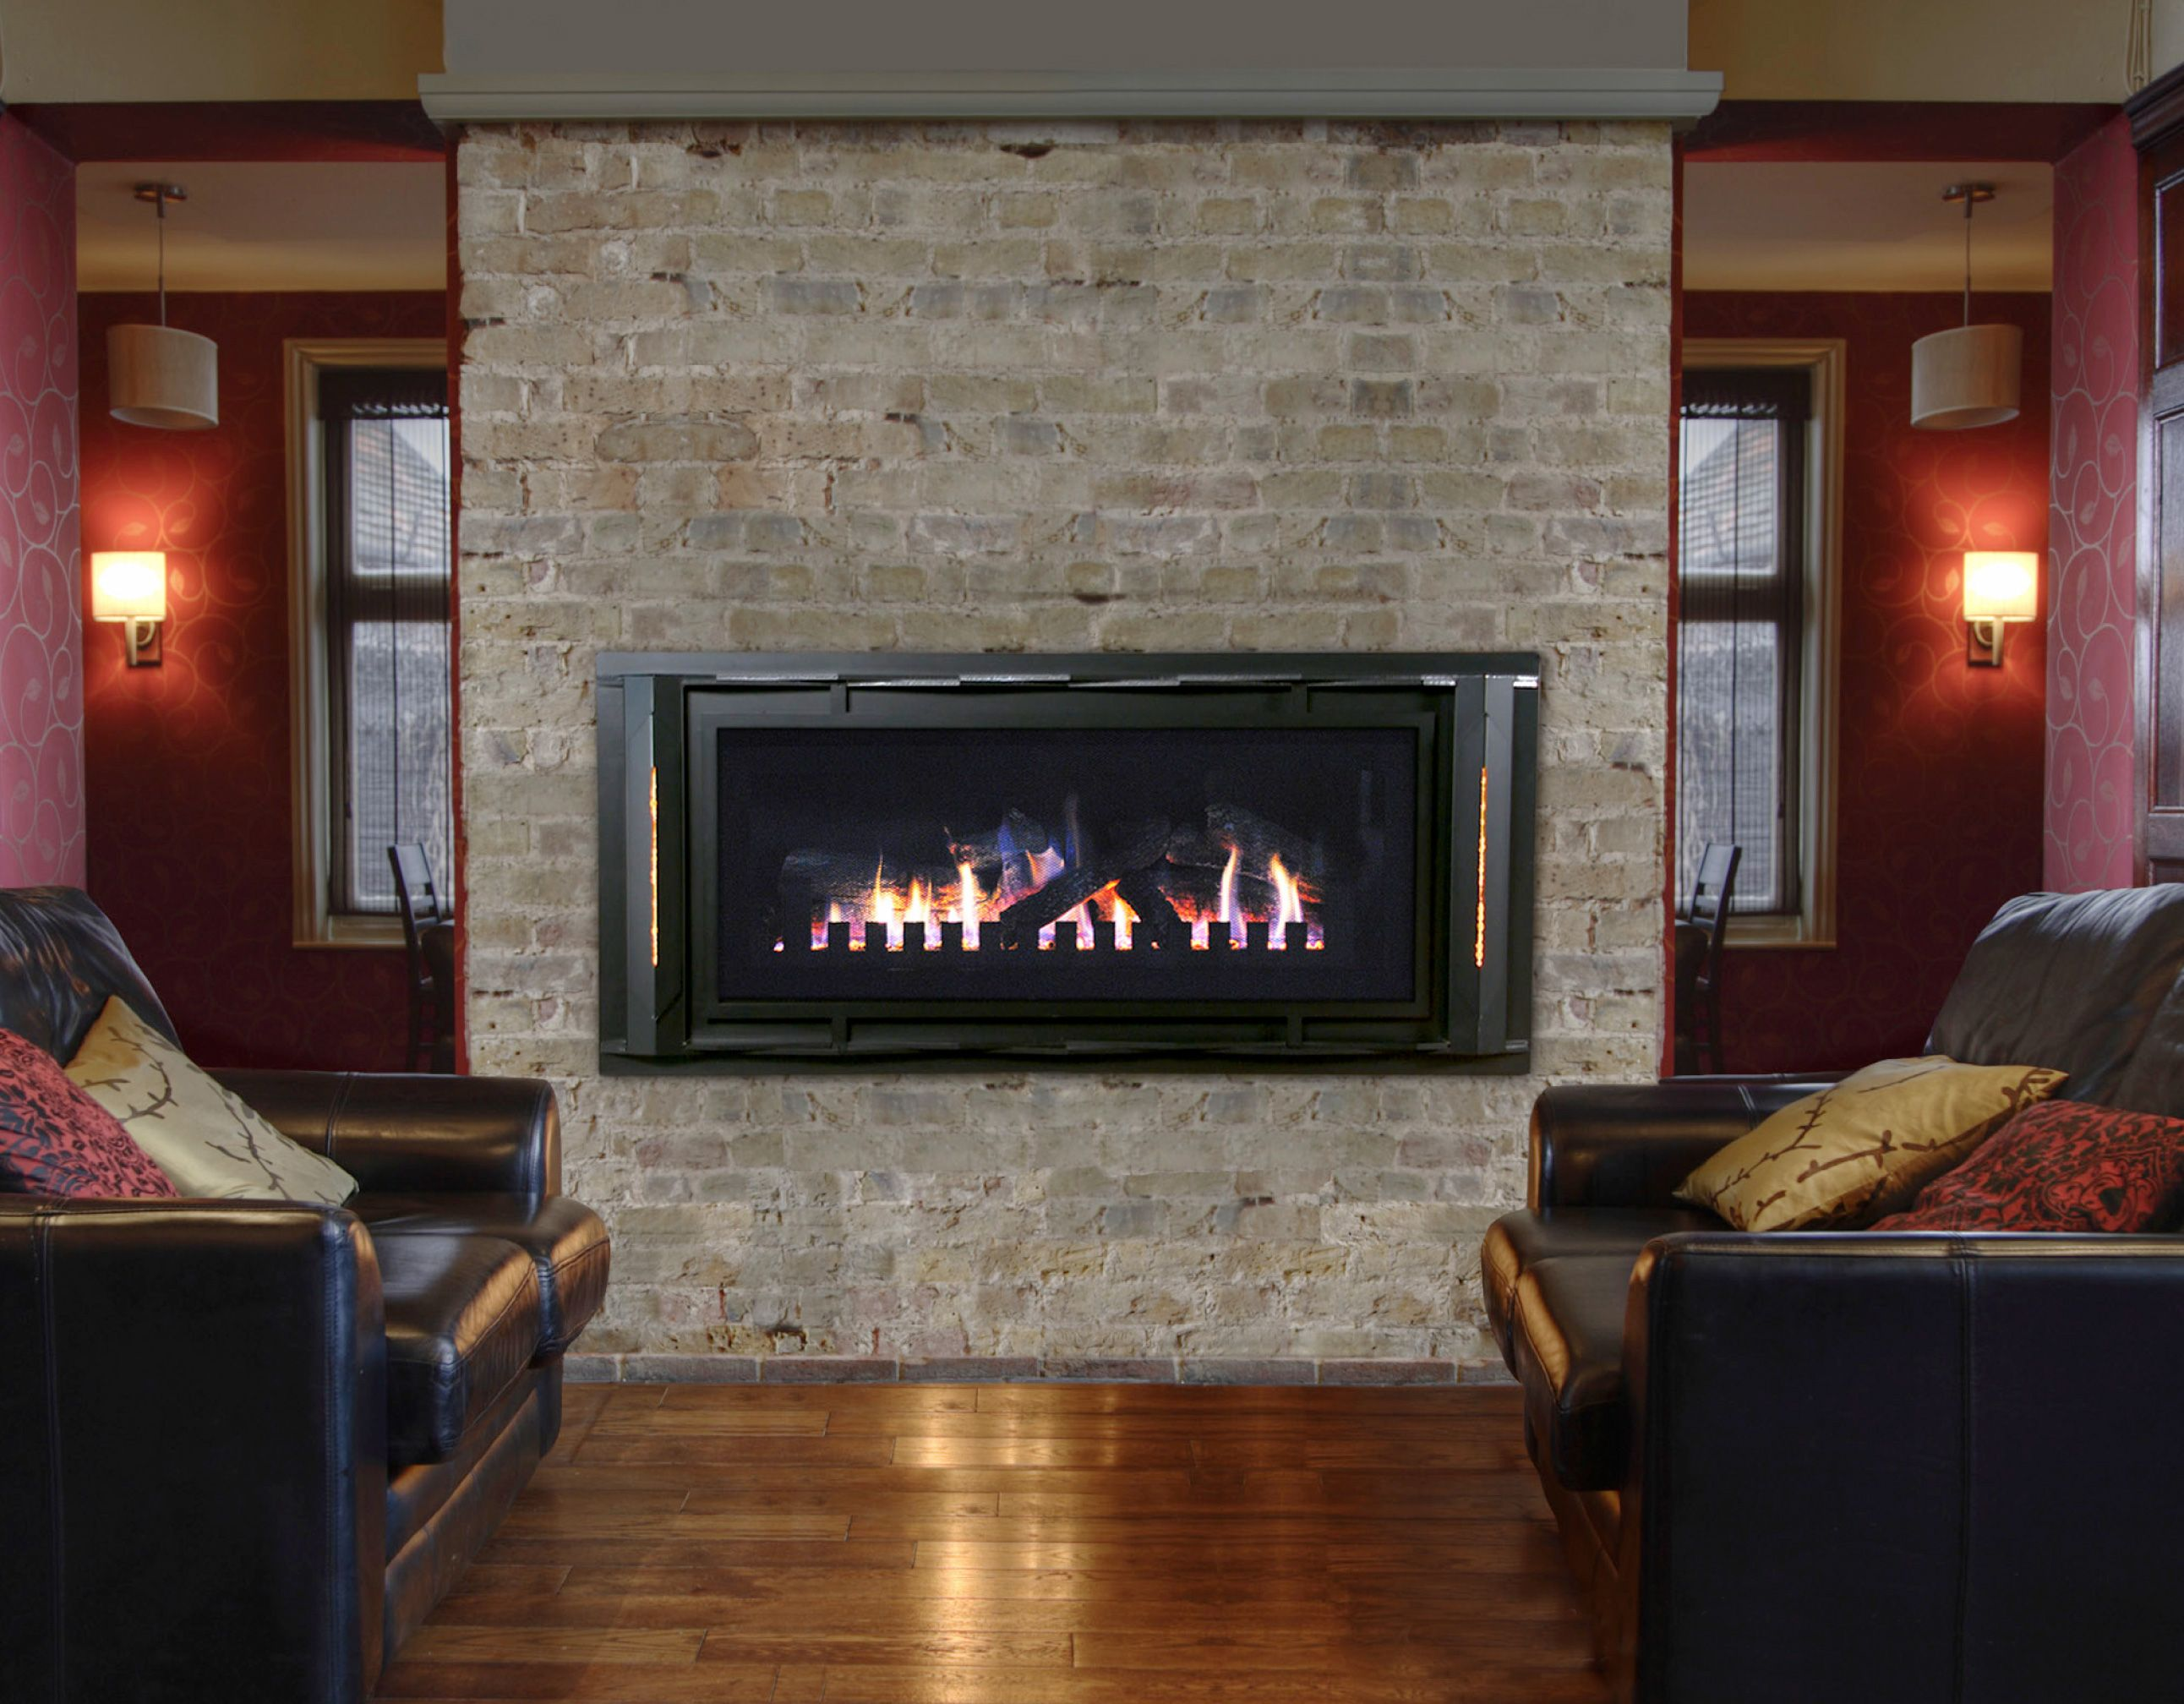 Linear Gas Fireplaces Like This Stellar Cml 58 Are A Great Way To Update Your Home With A Focal